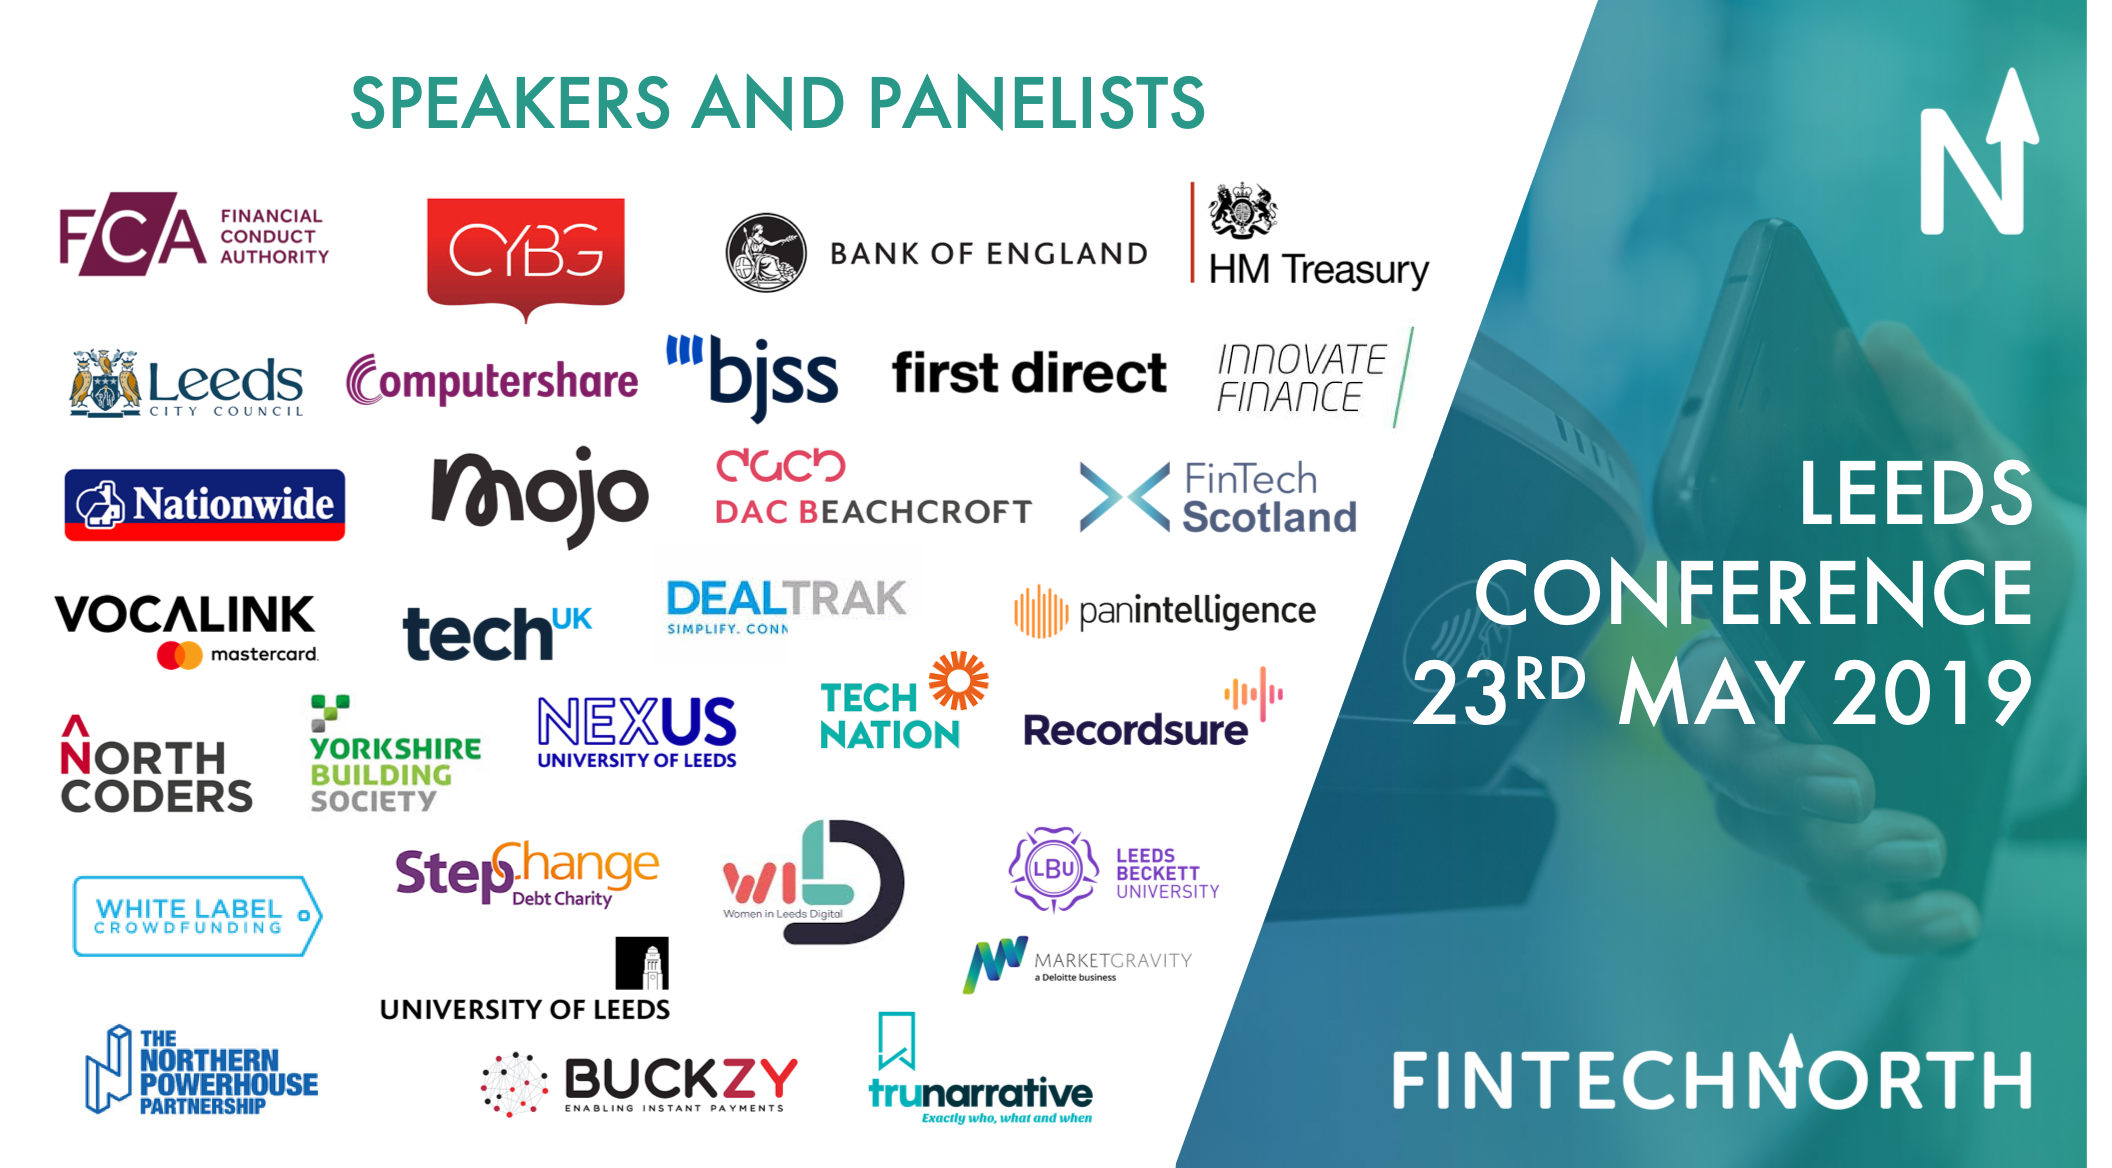 FinTech North Leeds Conference 2019